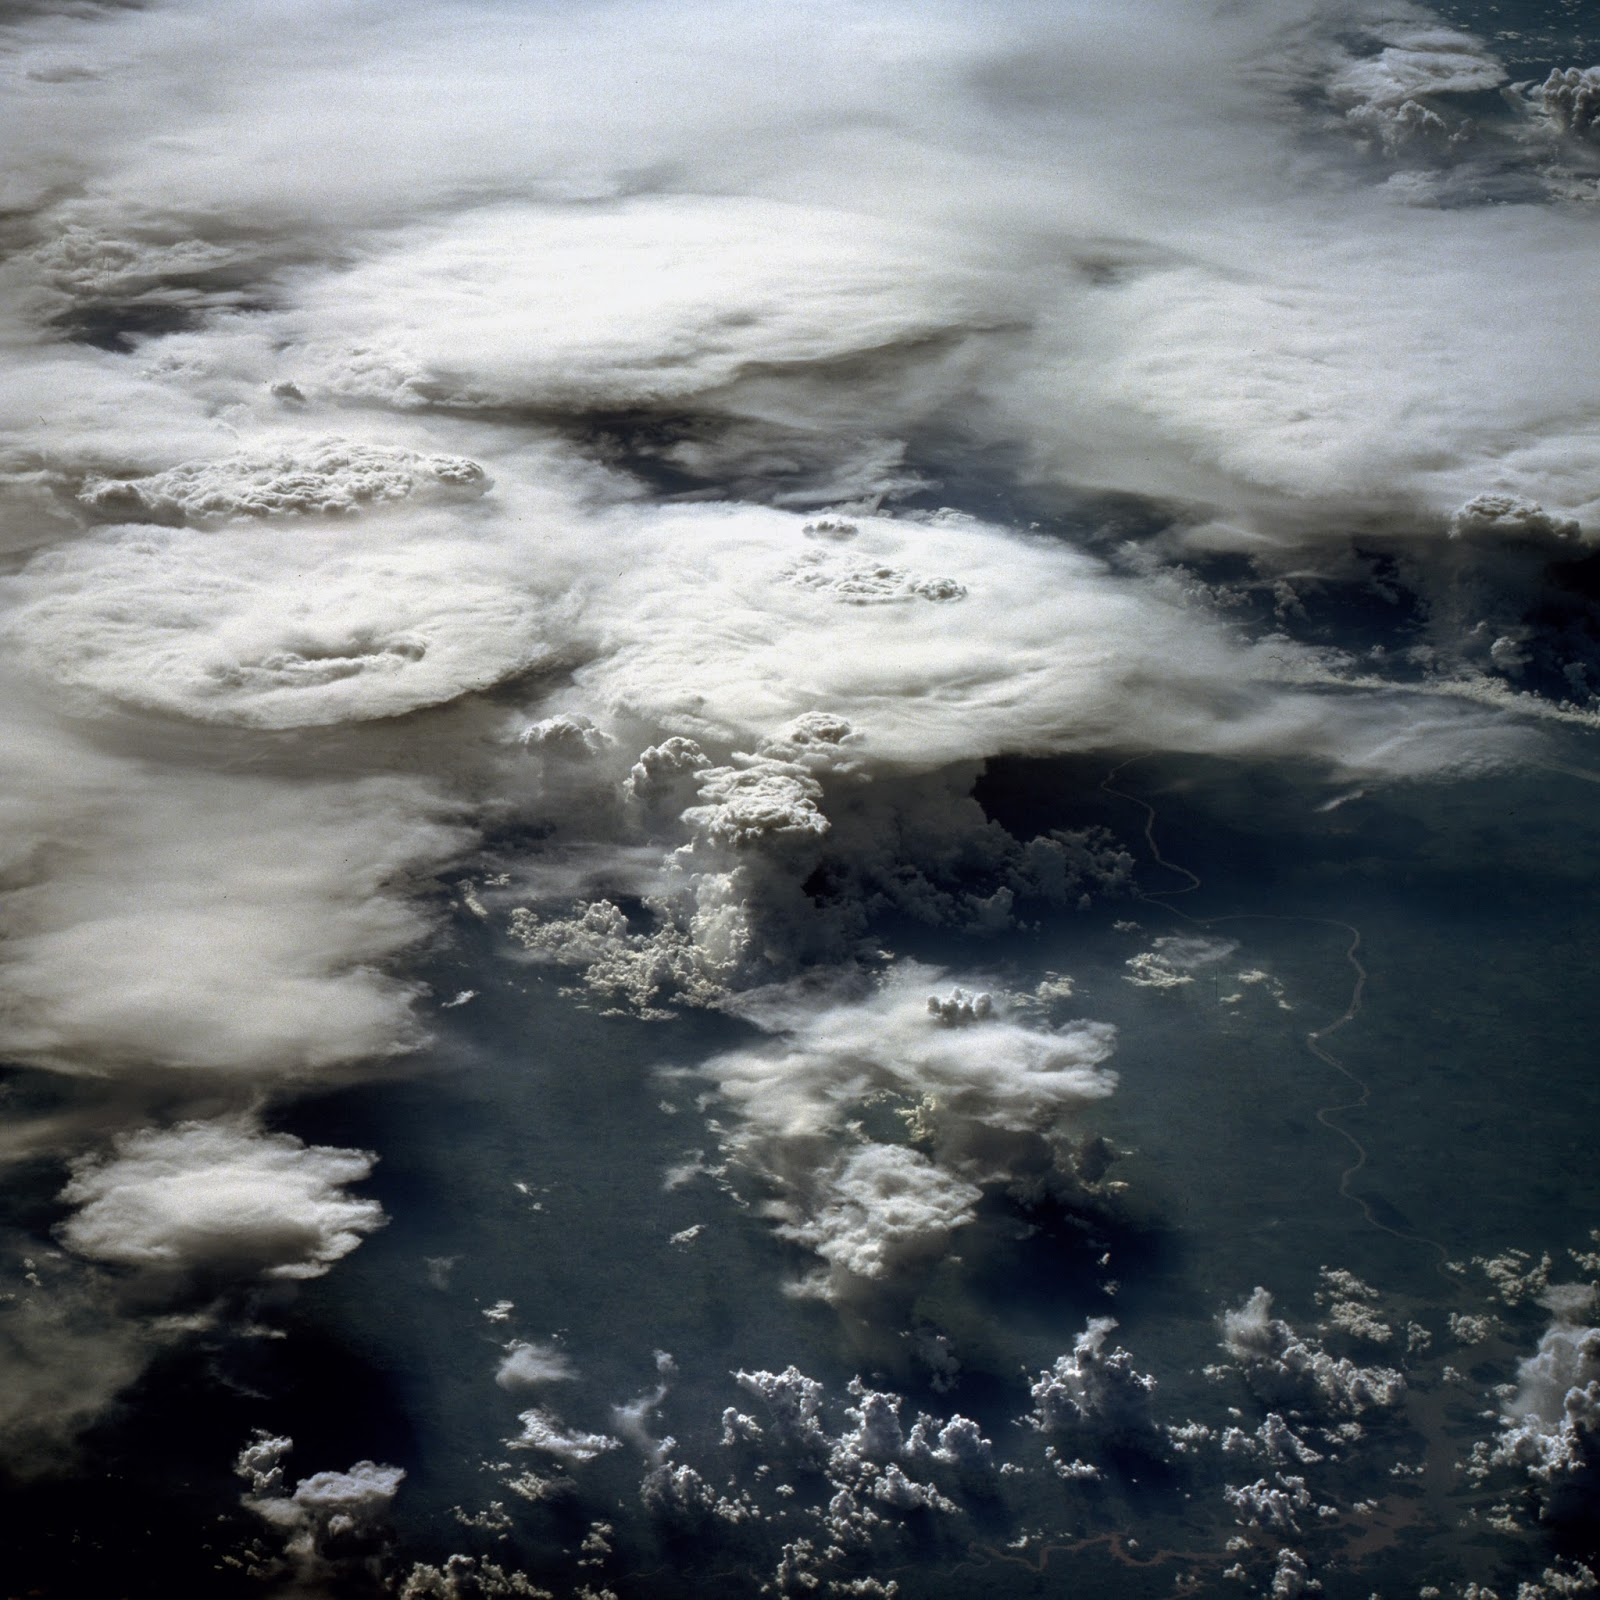 Anvil Cloud, Western Africa by NASA